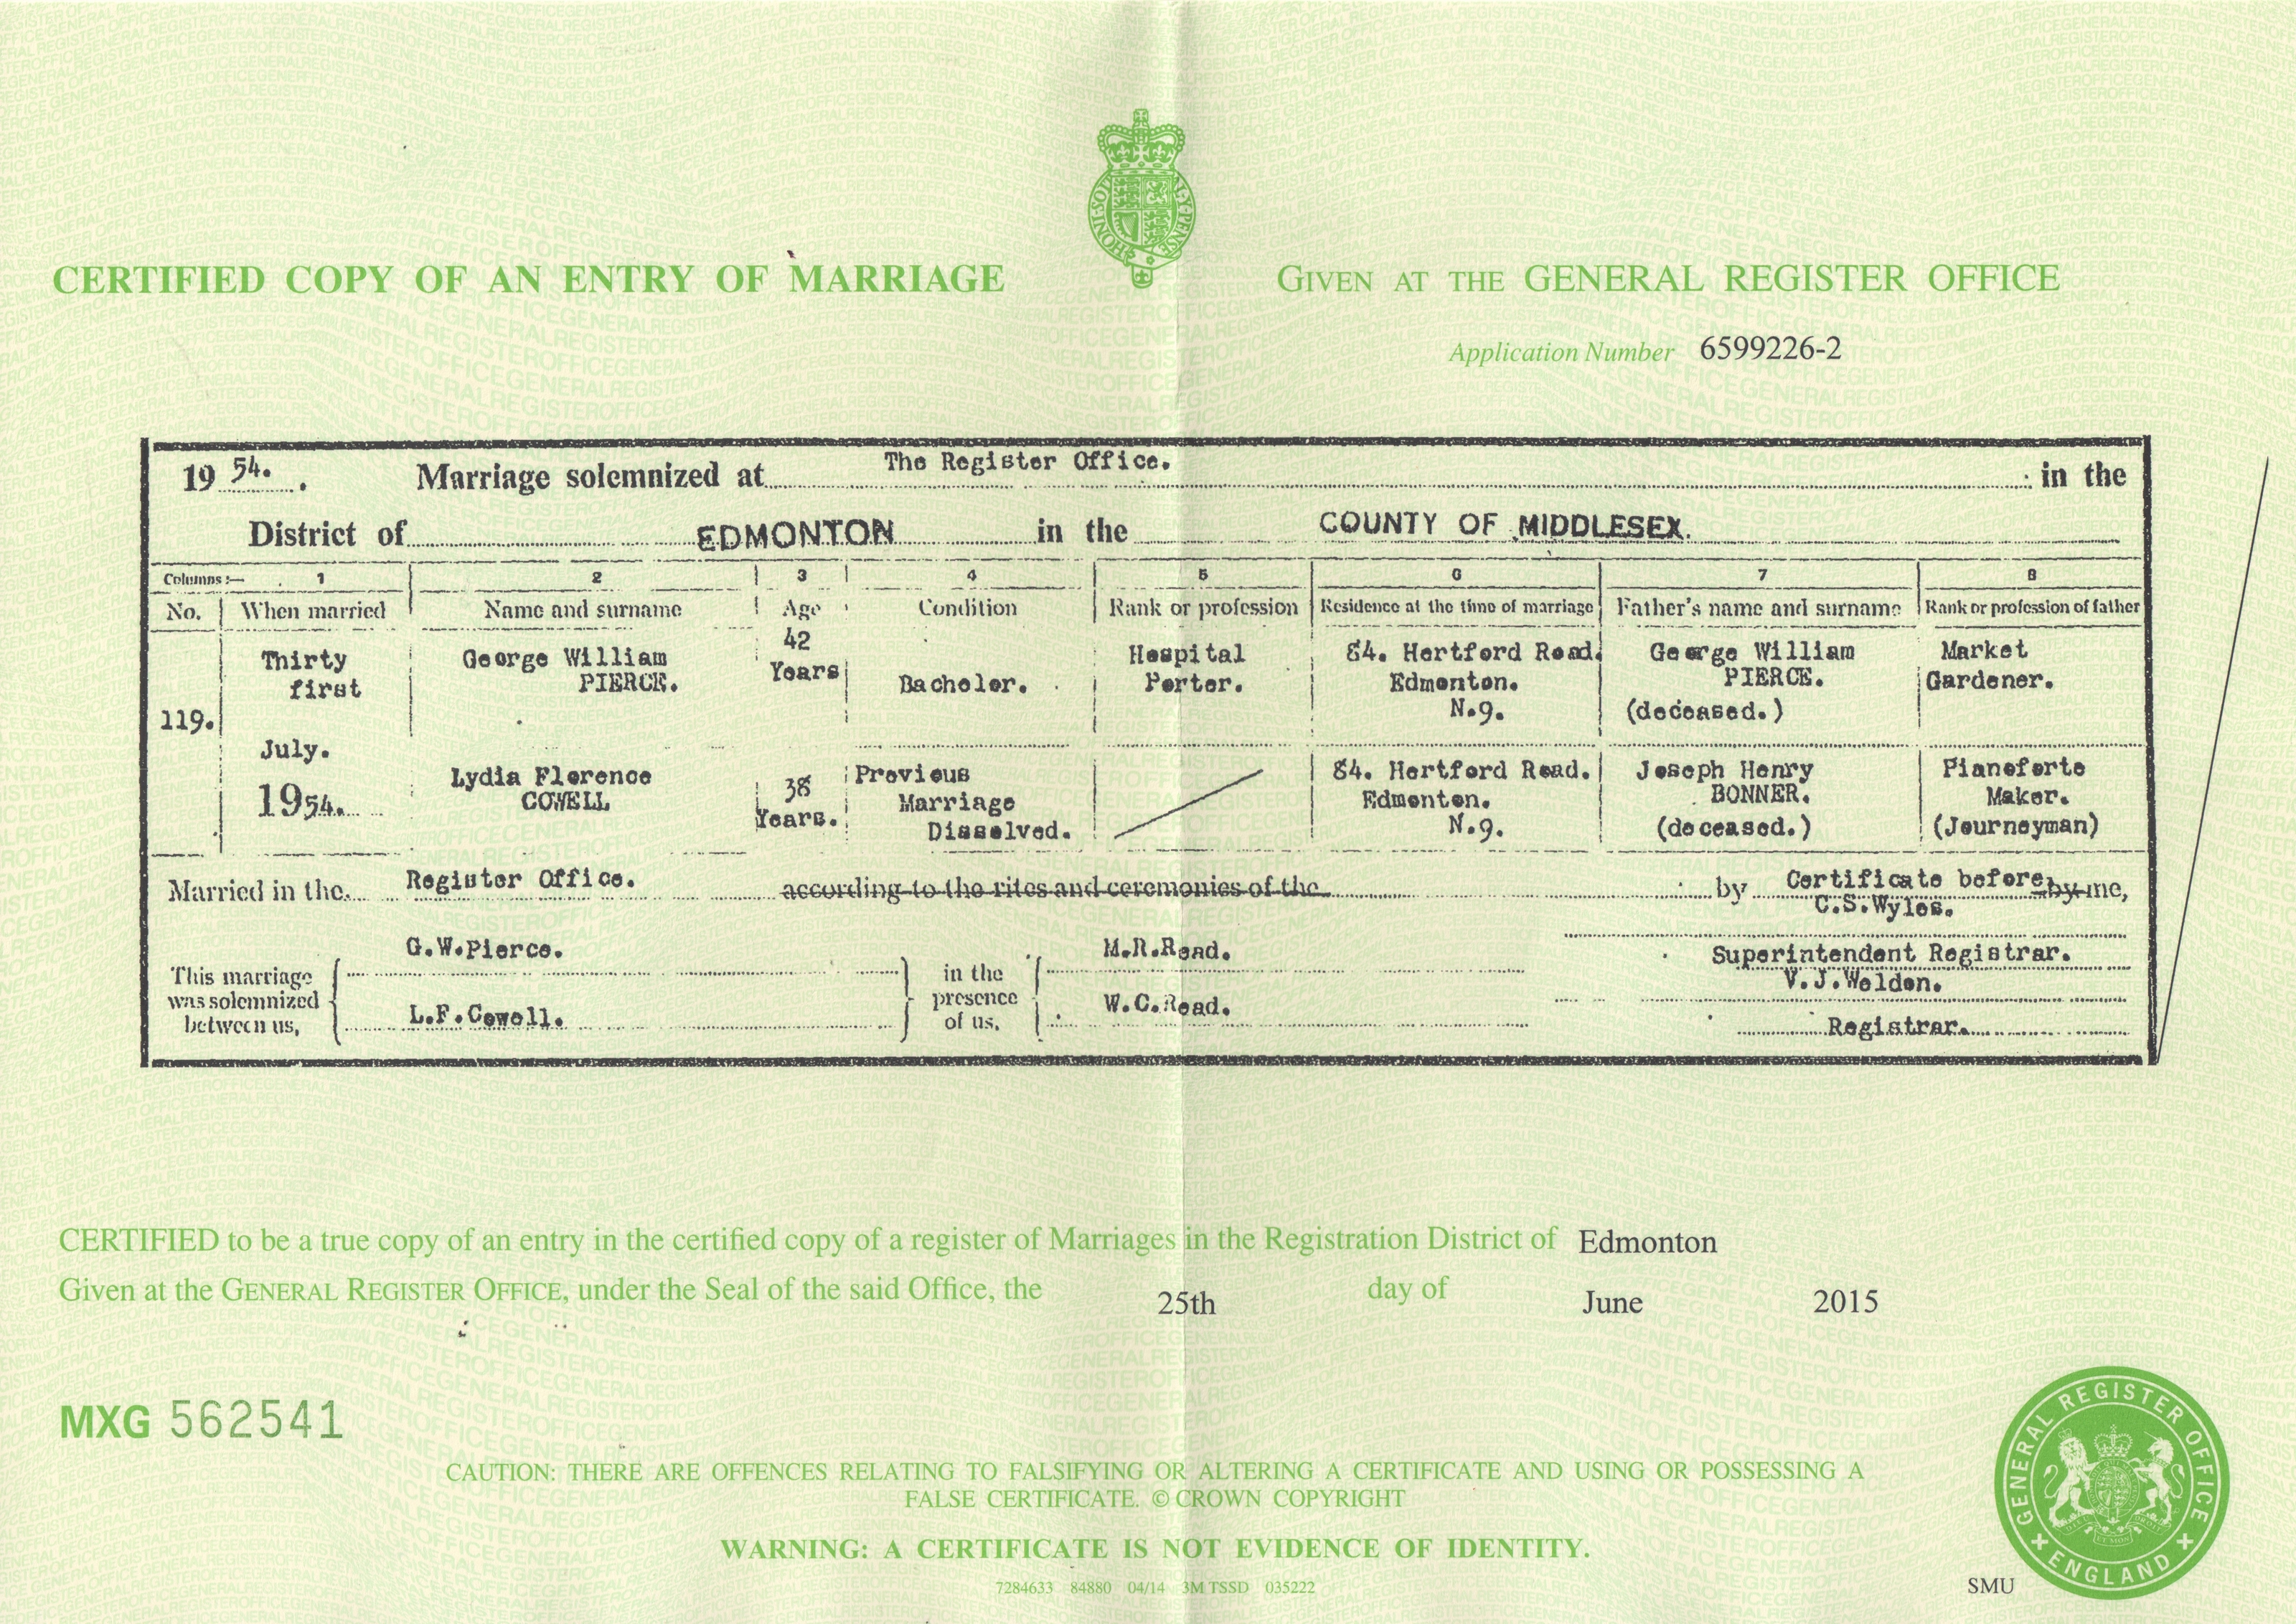 George Pierce - Lydia Bonner - marriage certificate